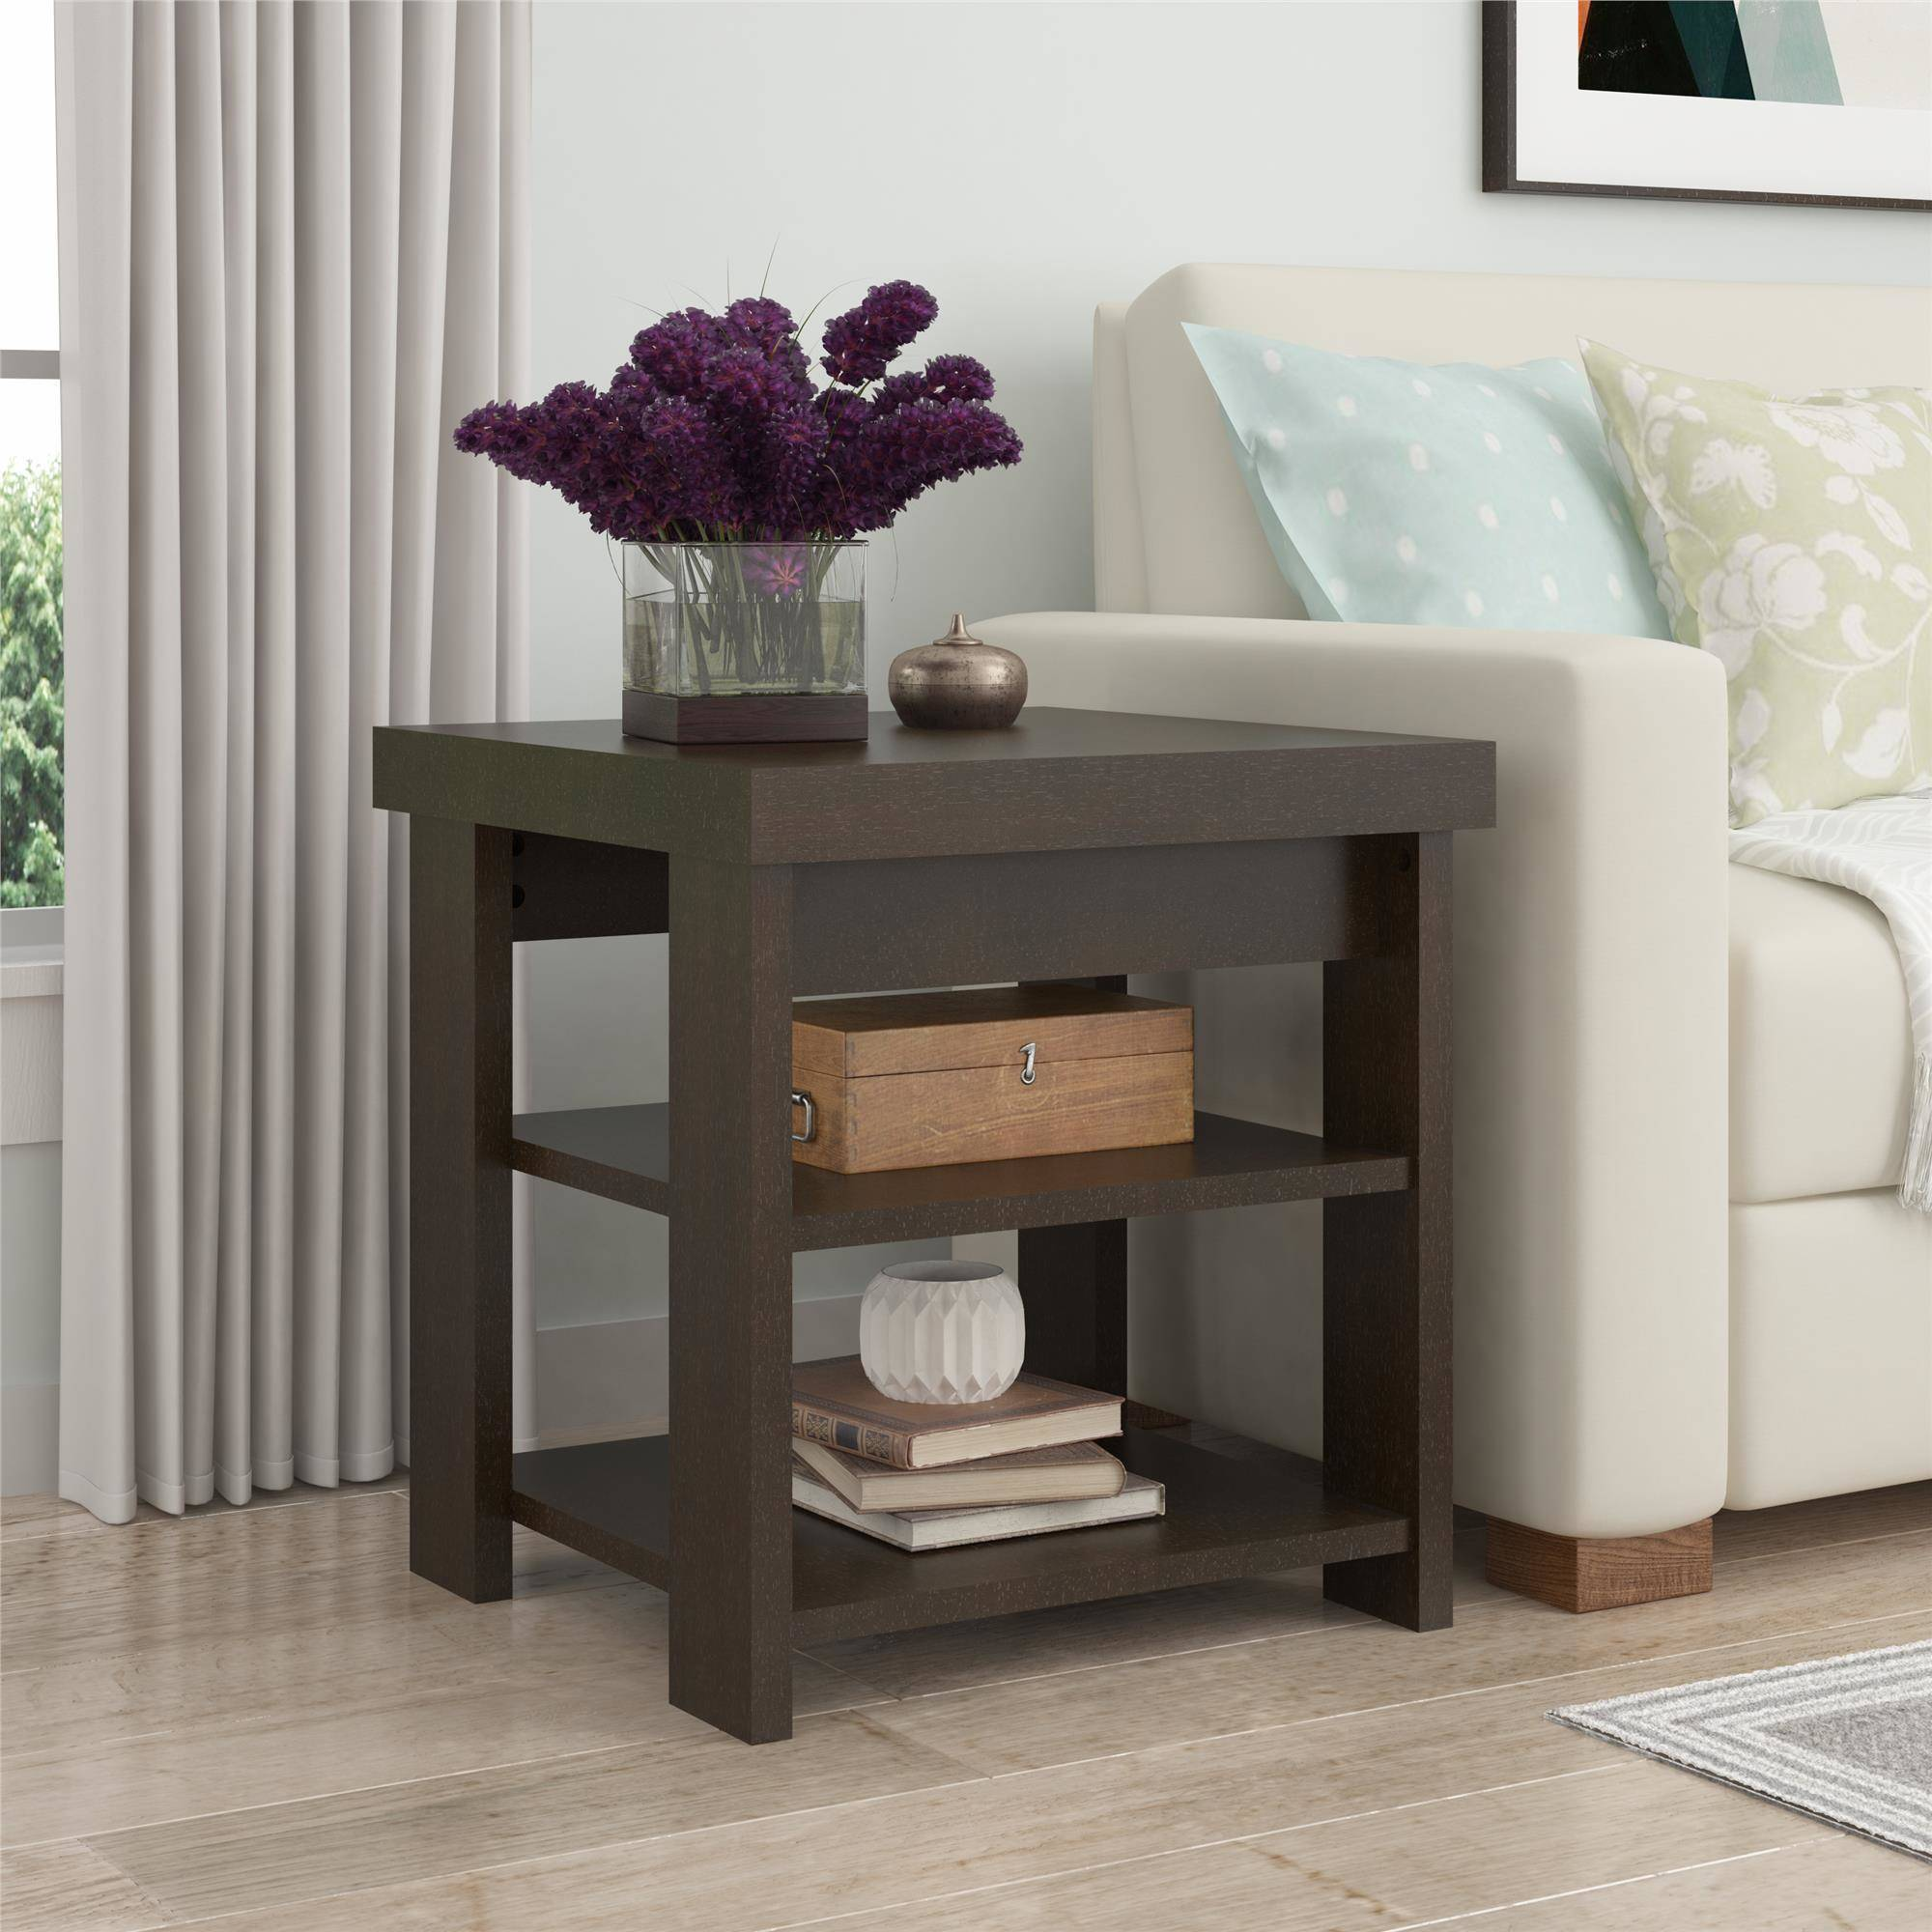 Ameriwood Home Jensen End Table, Espresso by Generic